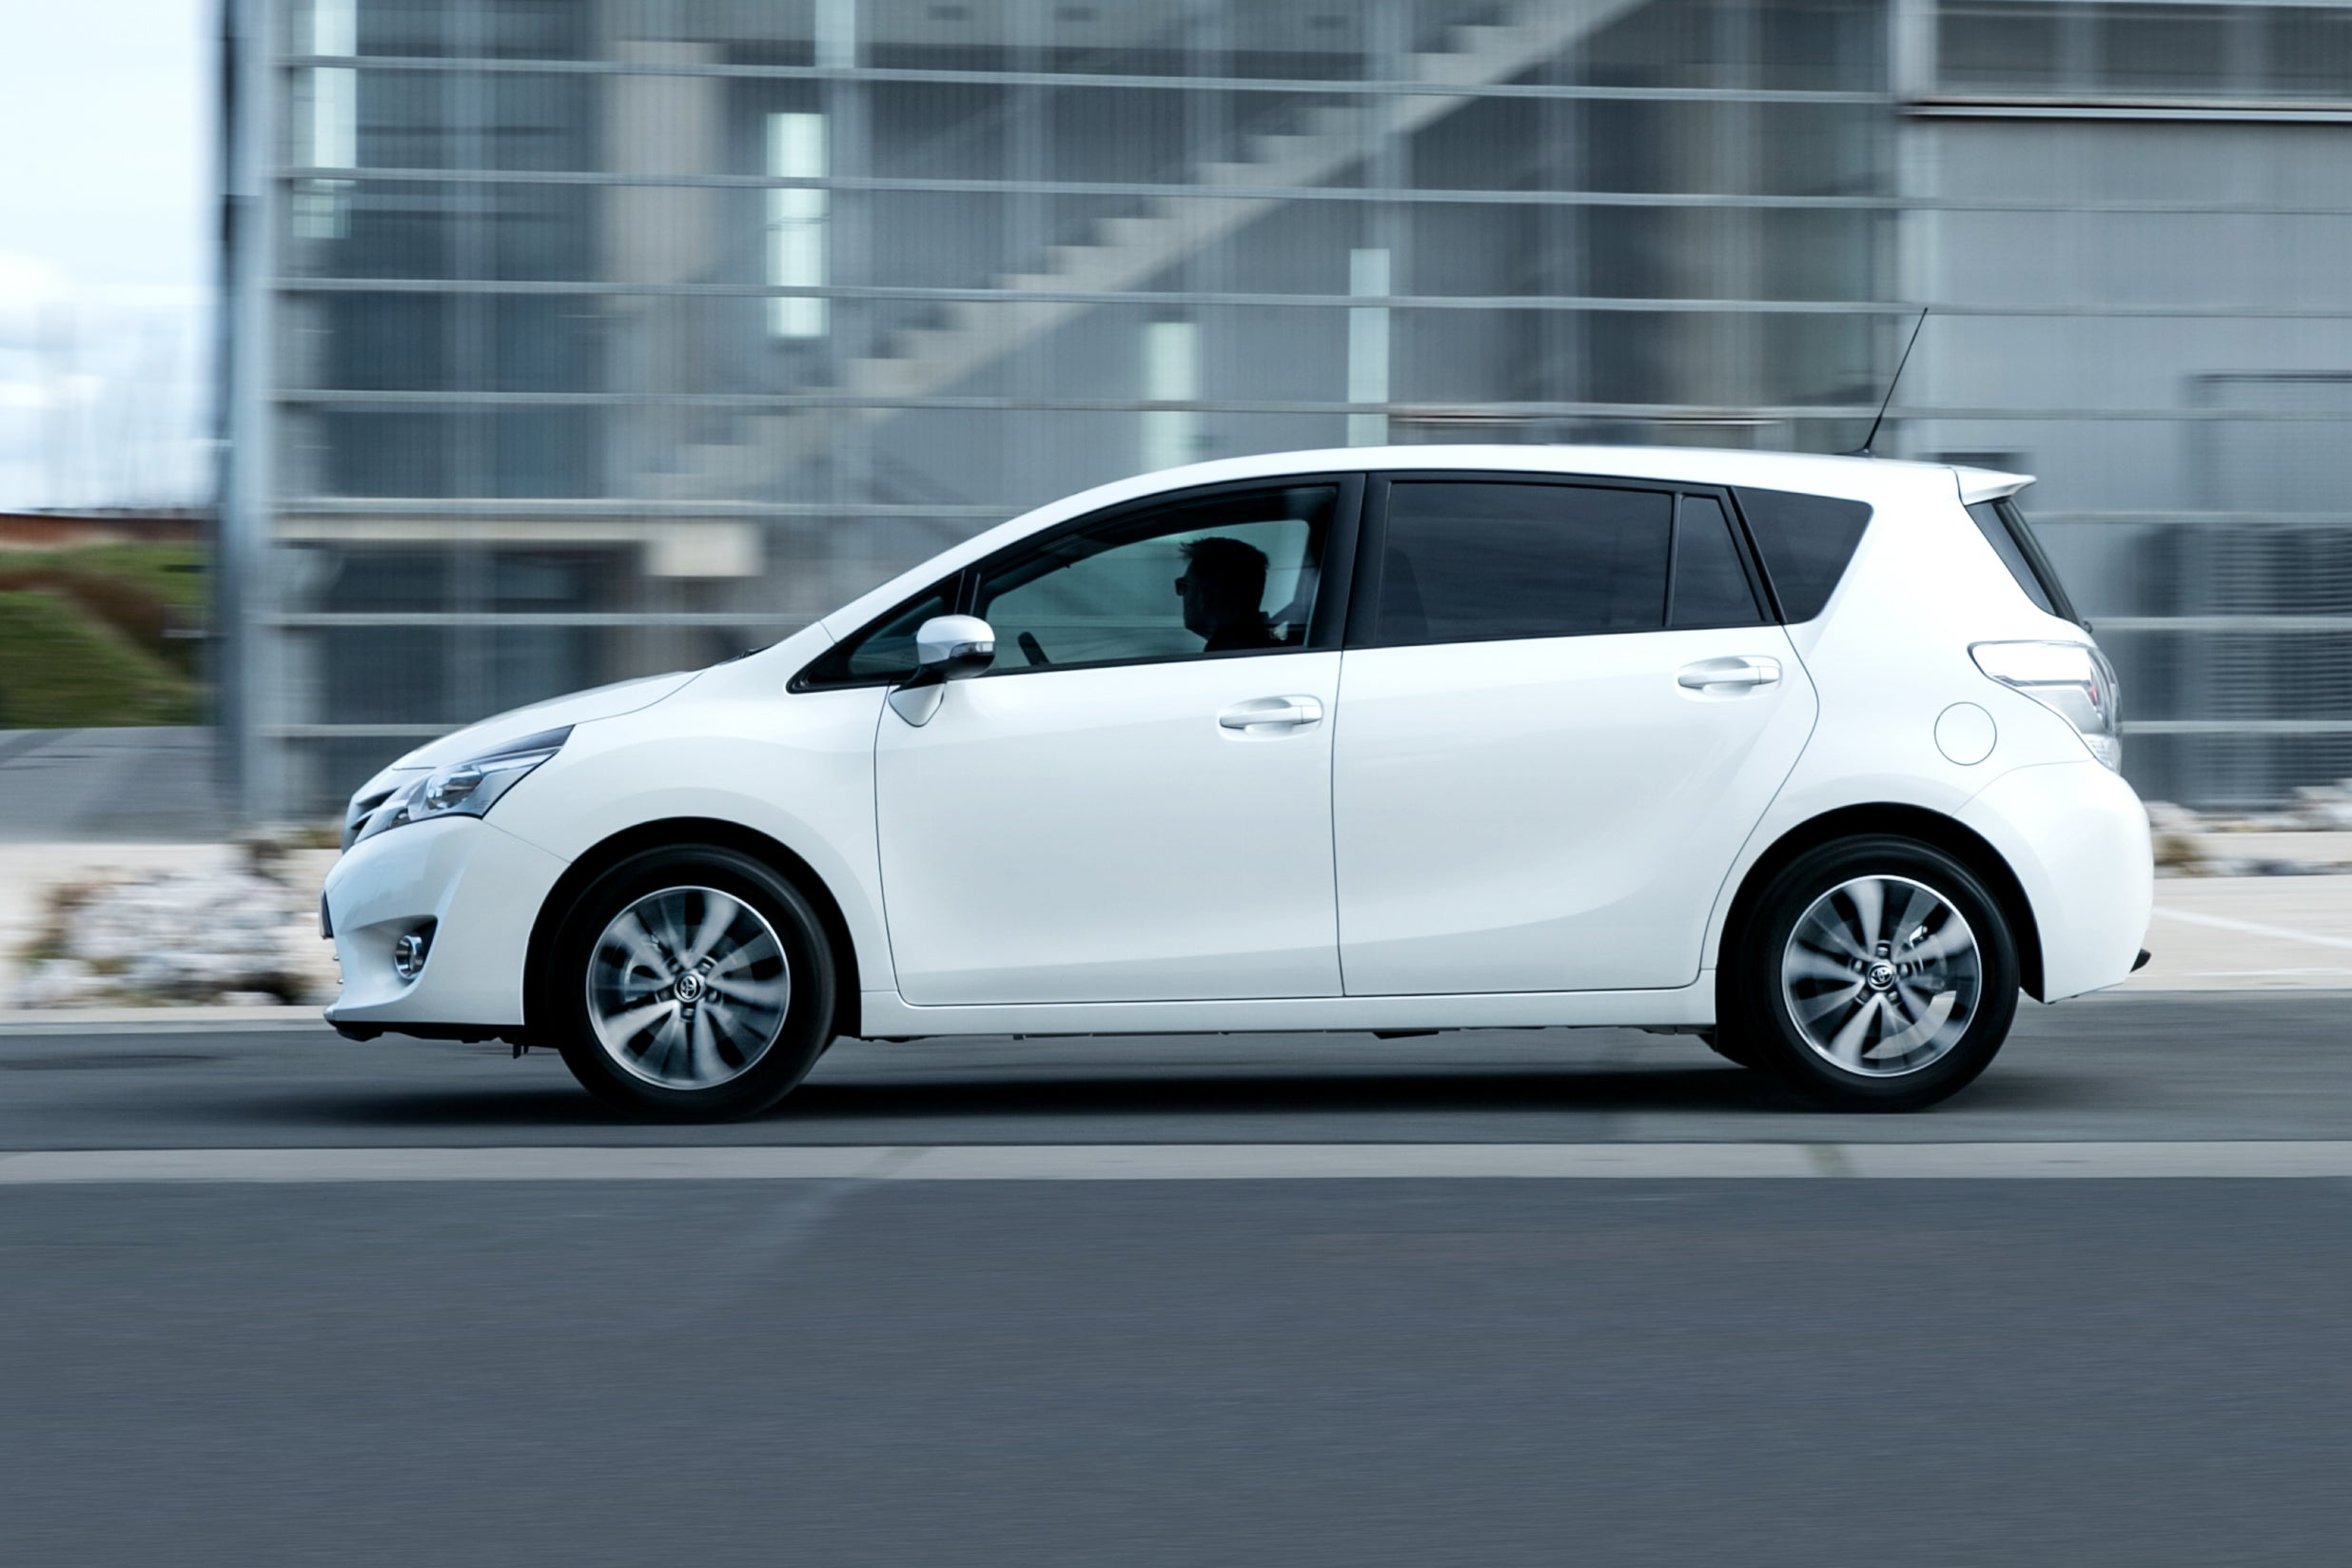 Toyota Verso Left Side View